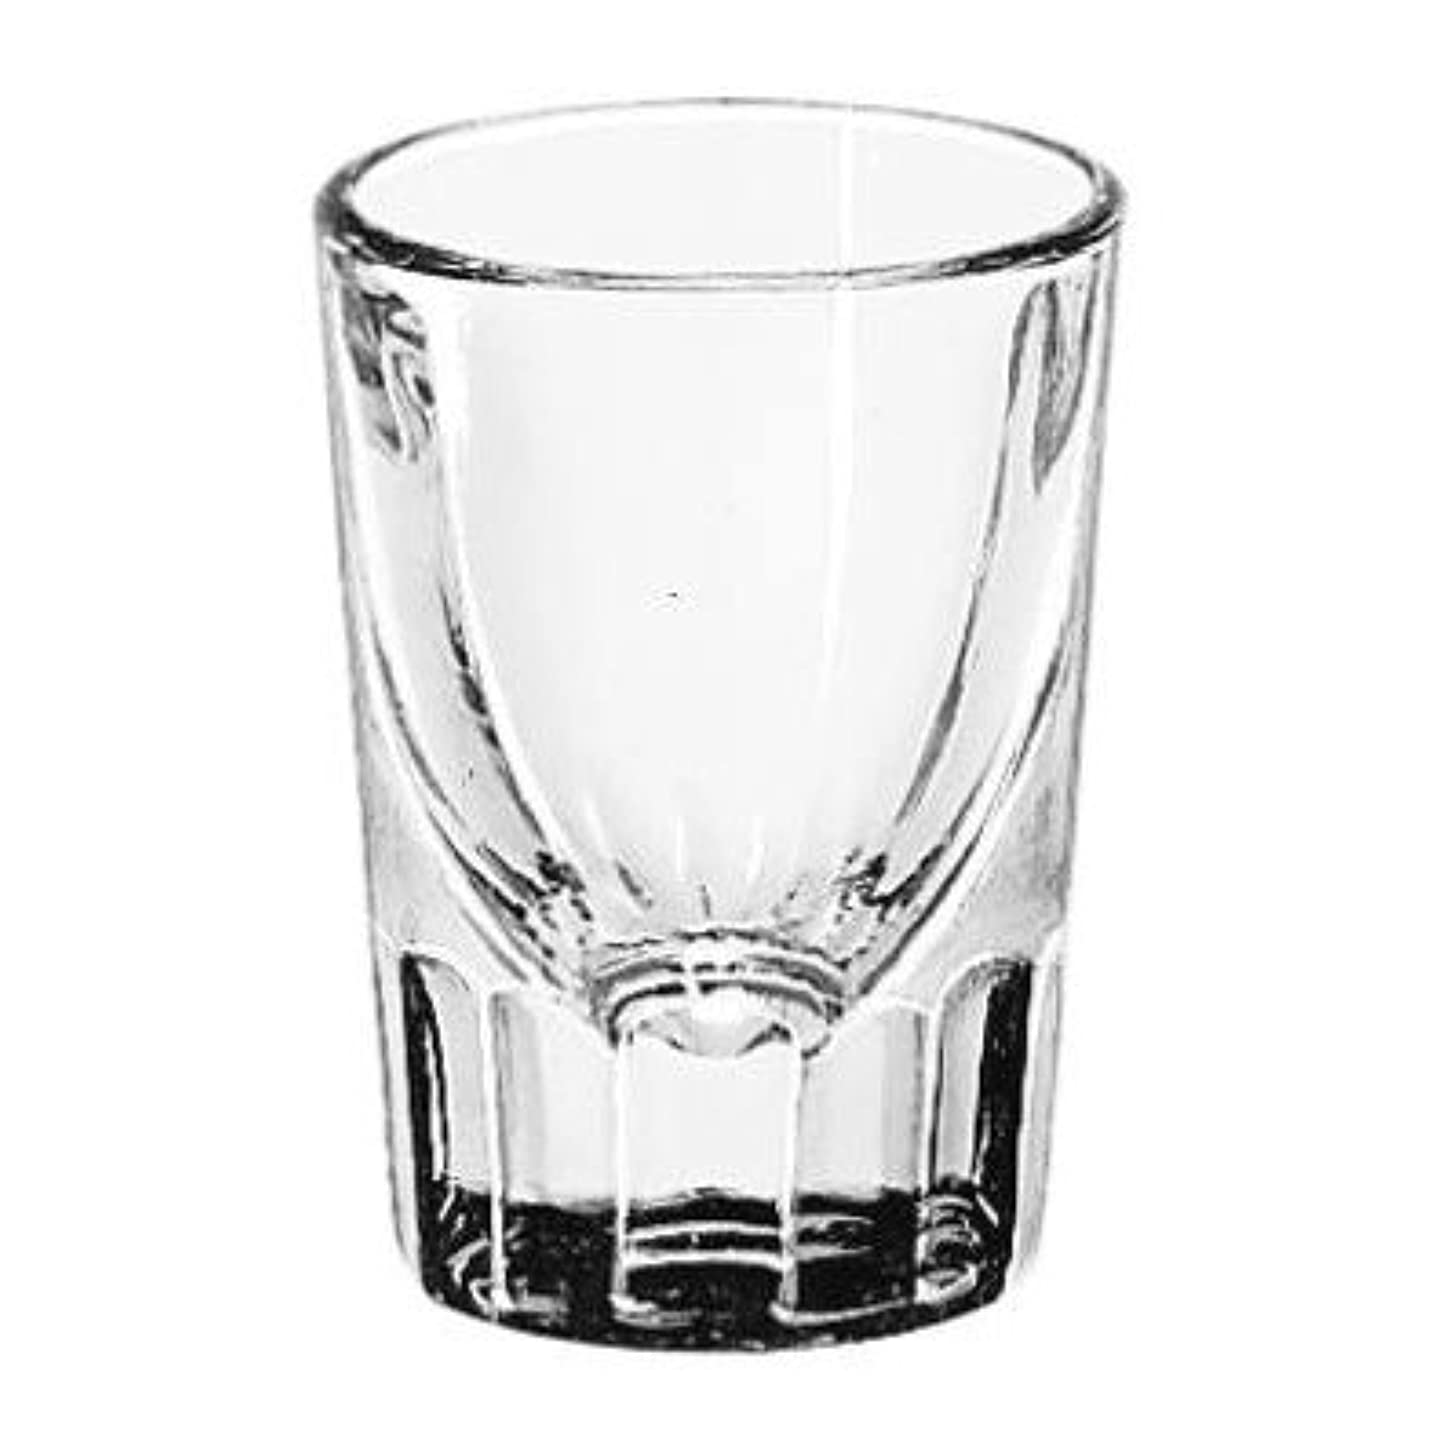 LIB5135 - Libbey Whiskey Service Glasses, Fluted Shot Glass, 1-1/4 Oz, 2-7/8 Inch Height